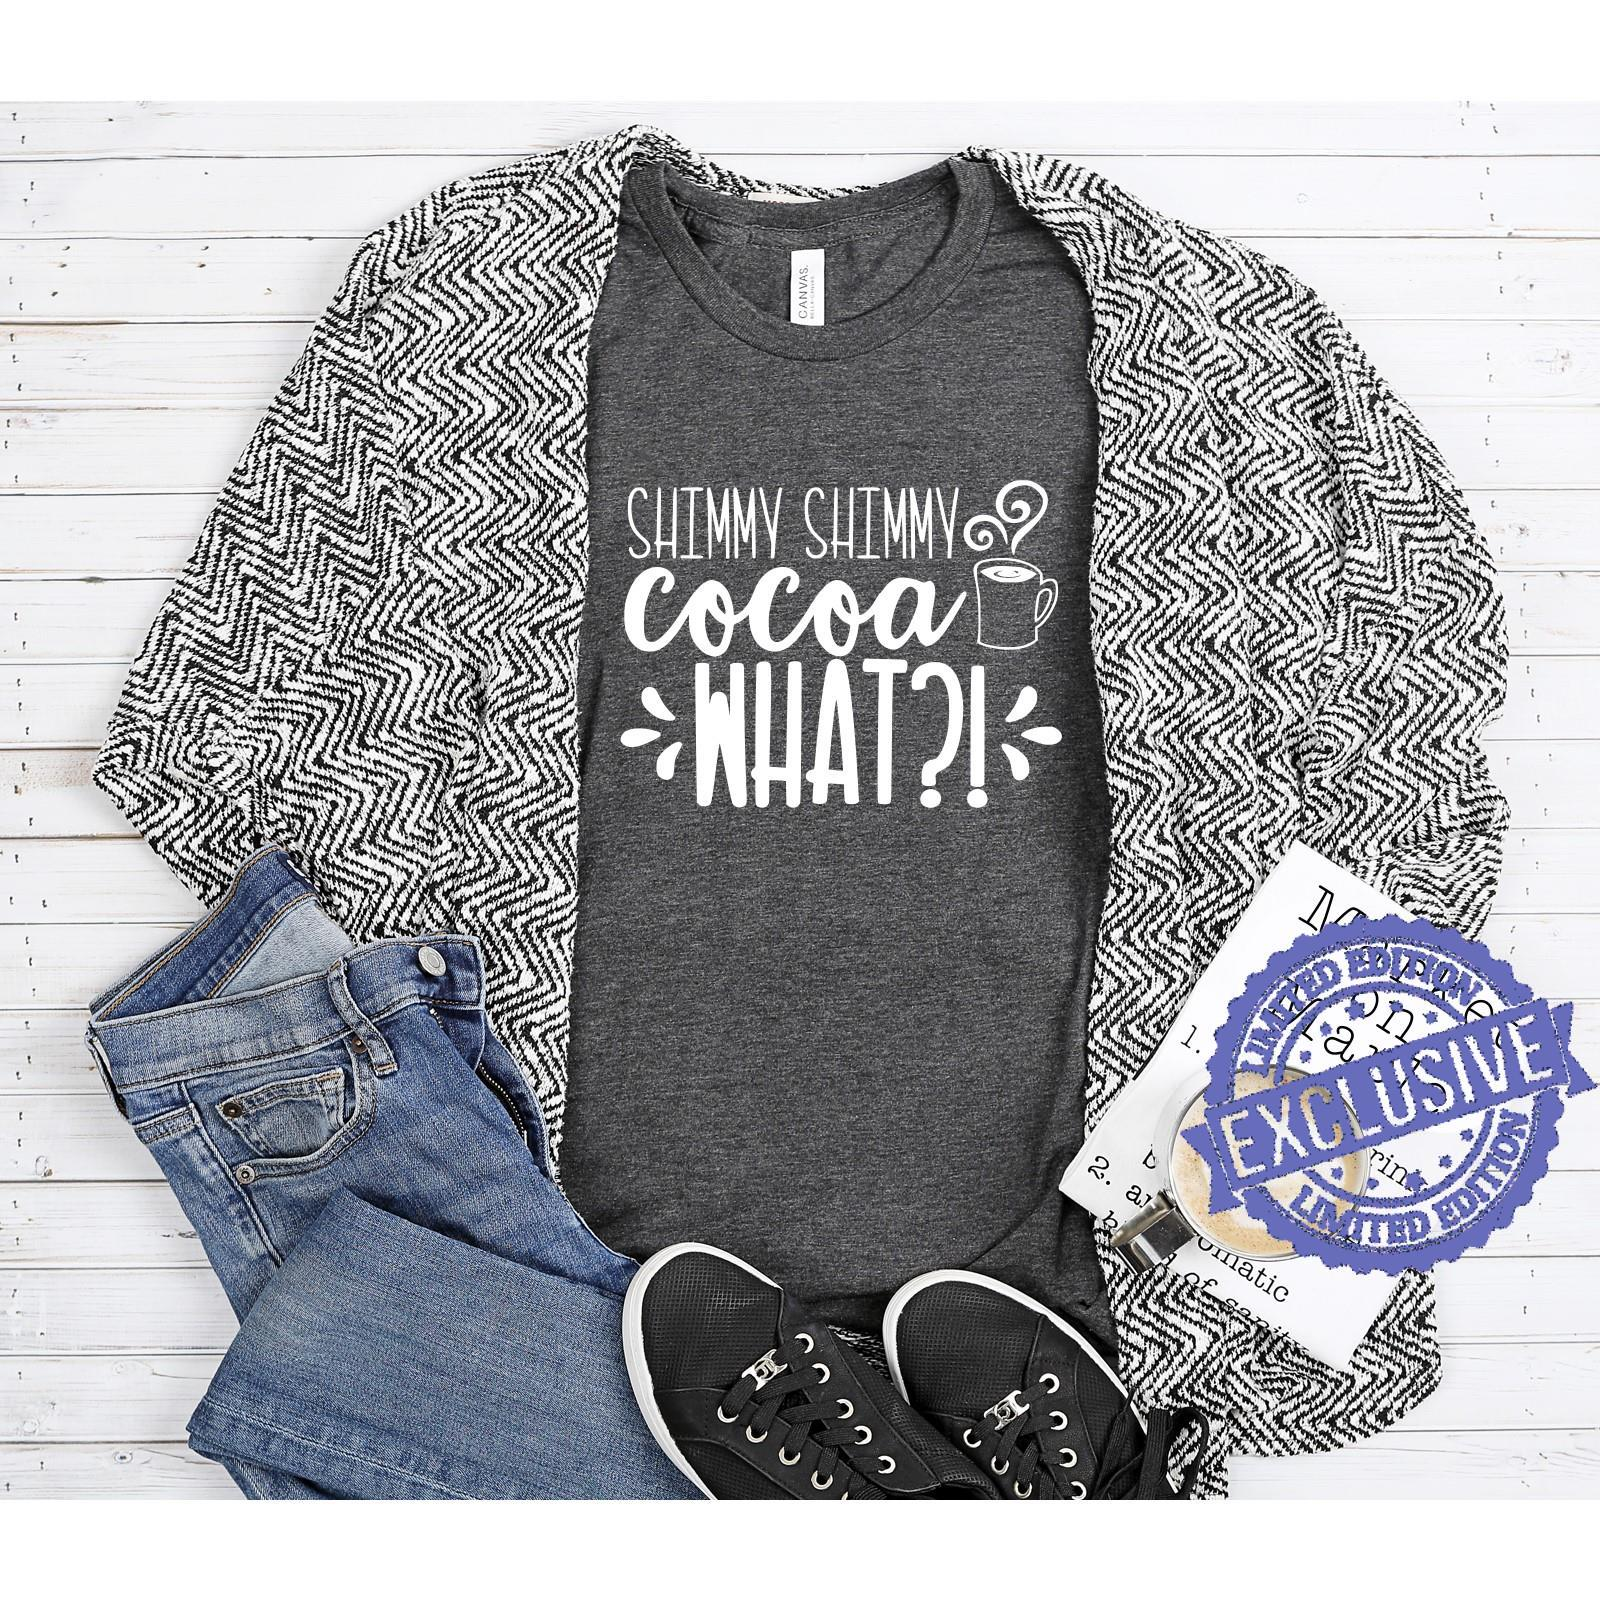 Shimmy shimmy cocoa what shirt